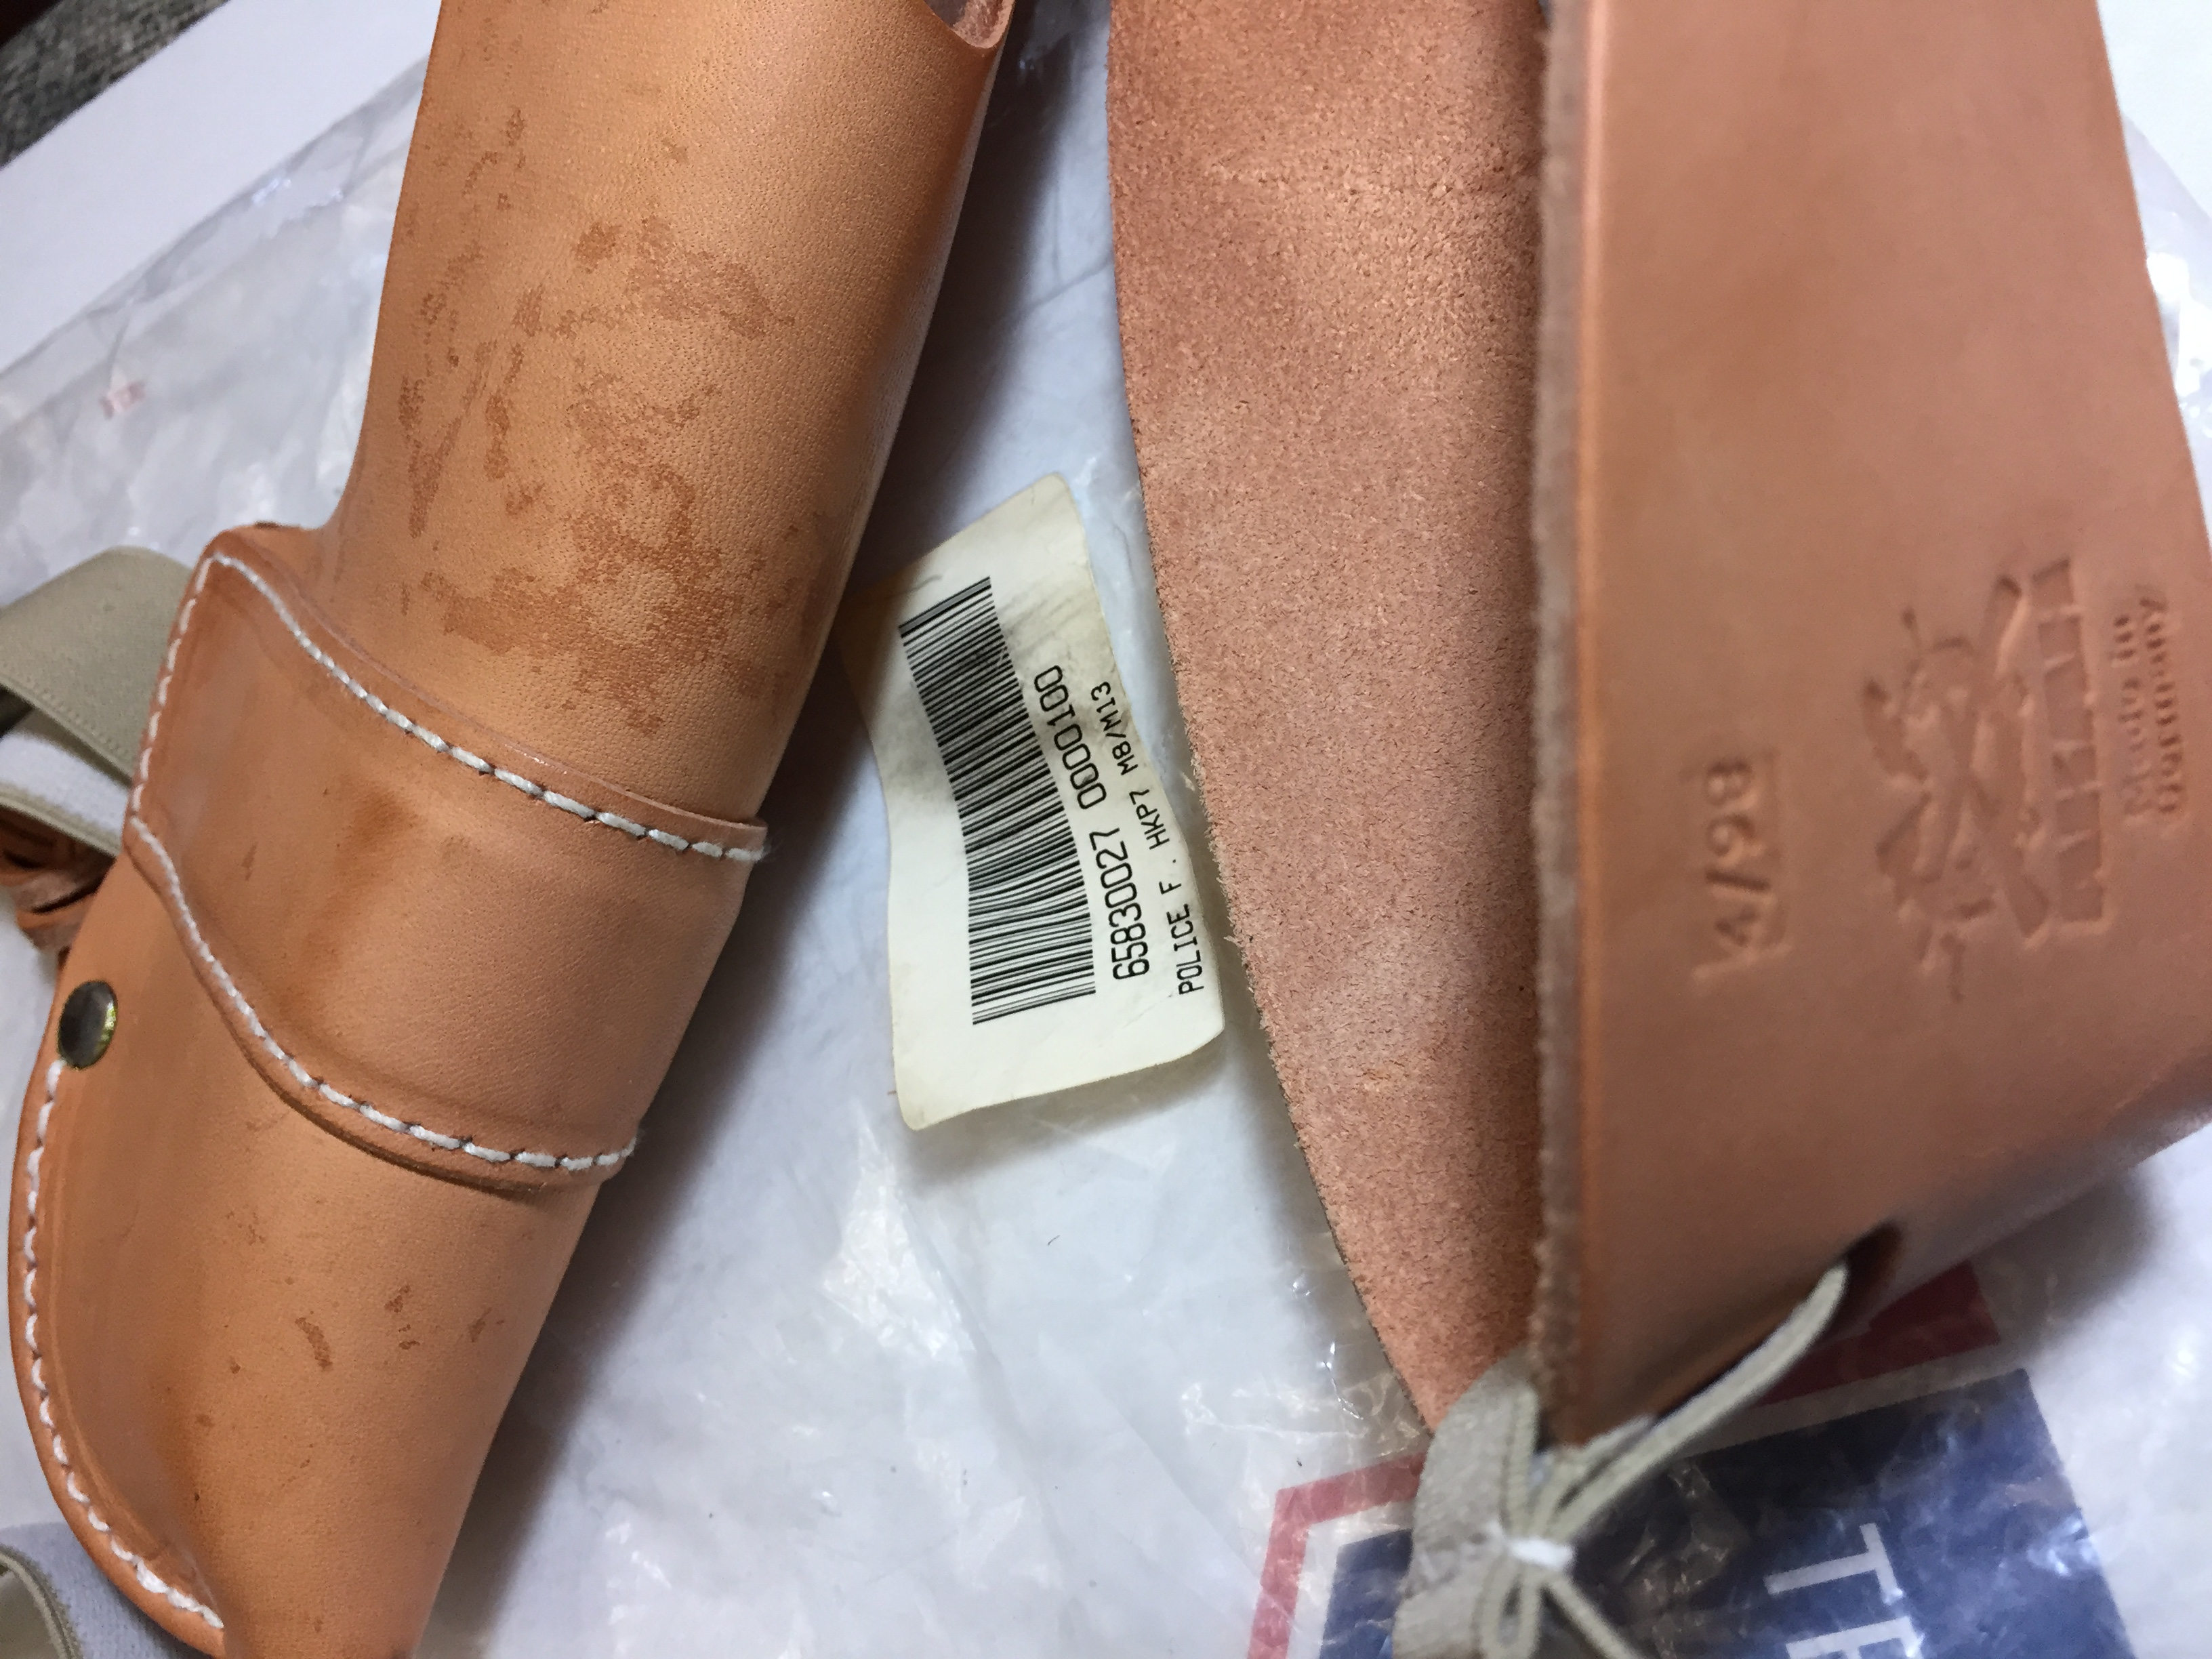 WTS: Several Milt Sparks holsters and a belt-img_0360.jpg